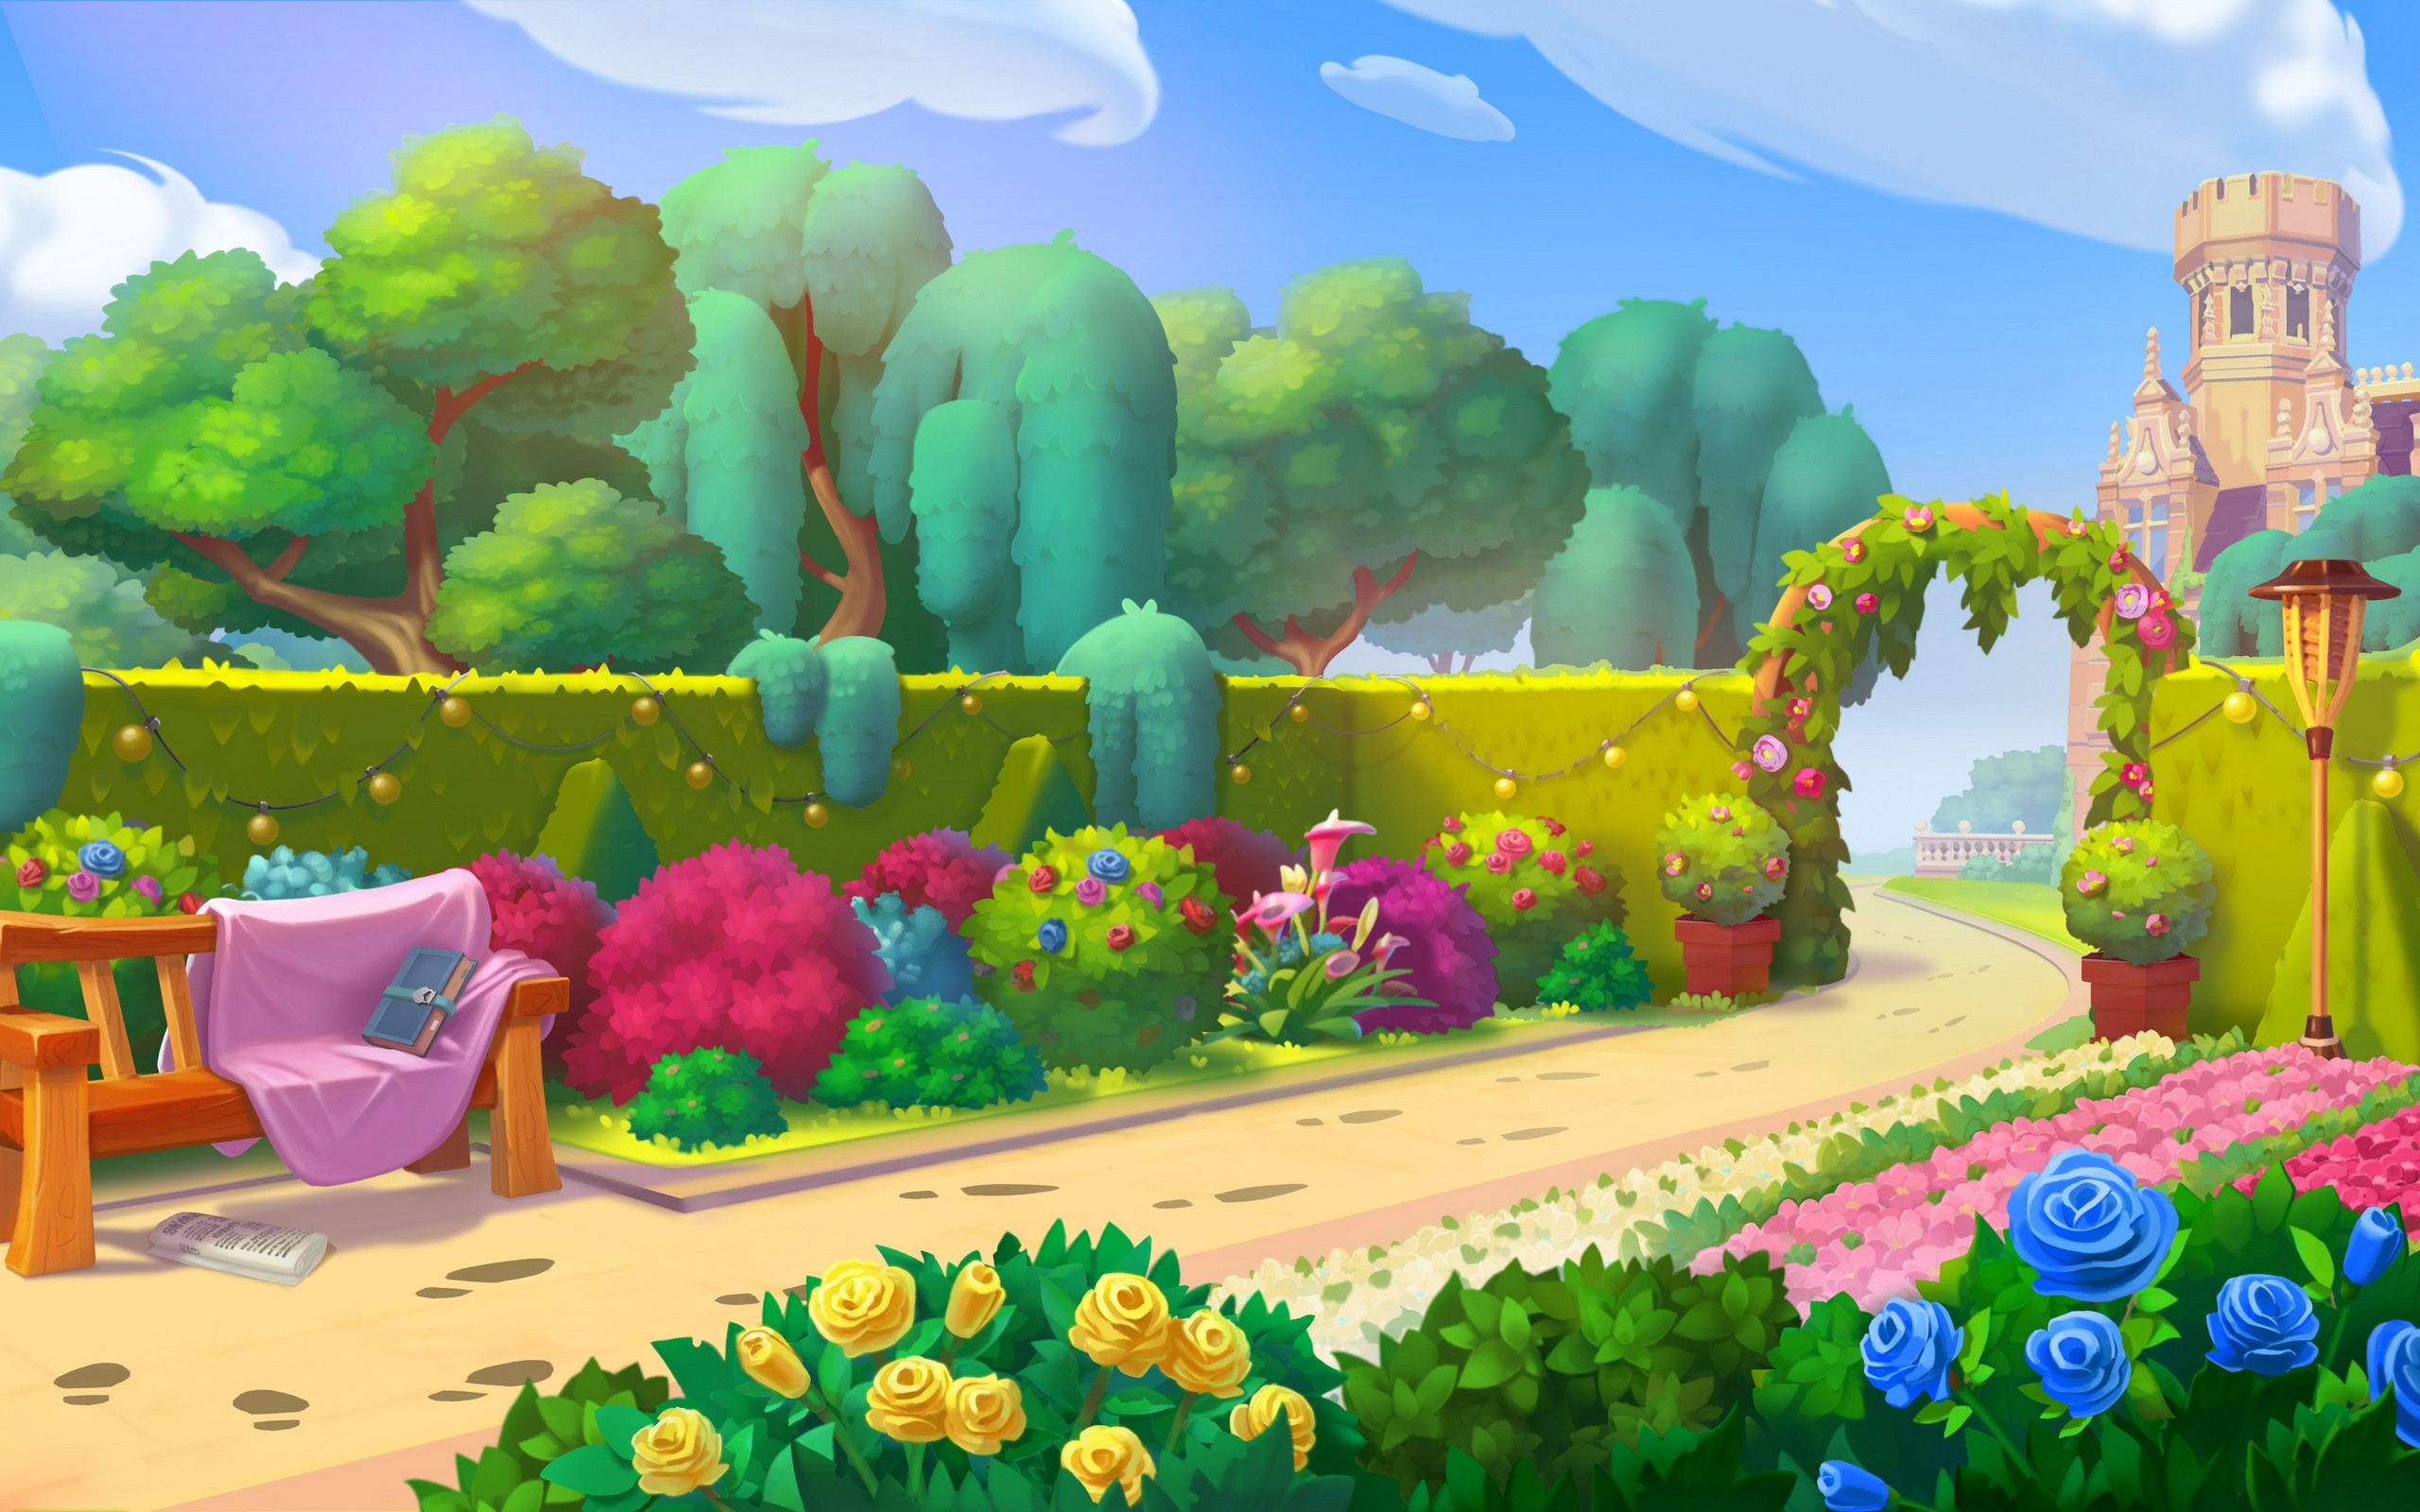 2D Video Game Backgrounds & Loading Screens